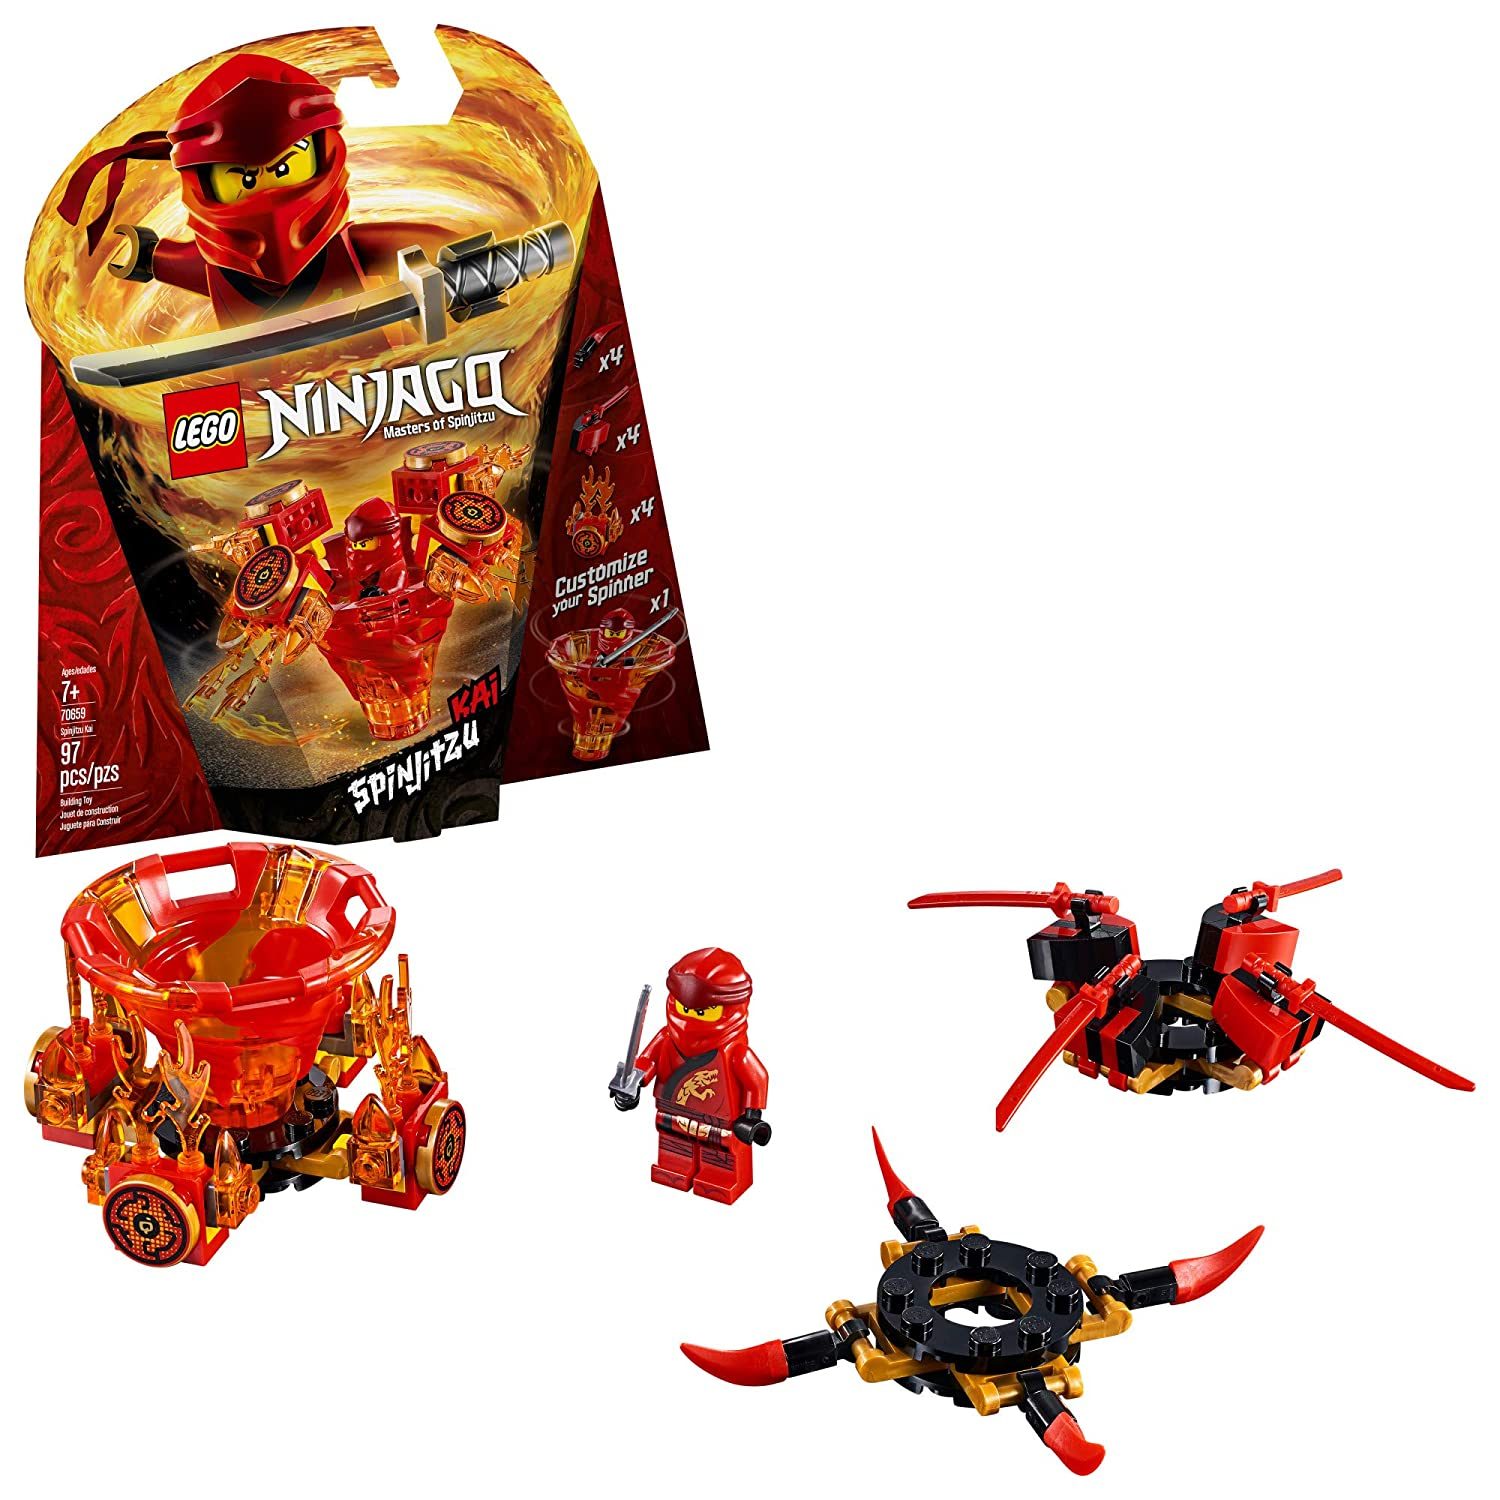 LEGO NINJAGO Spinjitzu Kai 70659 Building Kit, 2019 (97 Pieces)